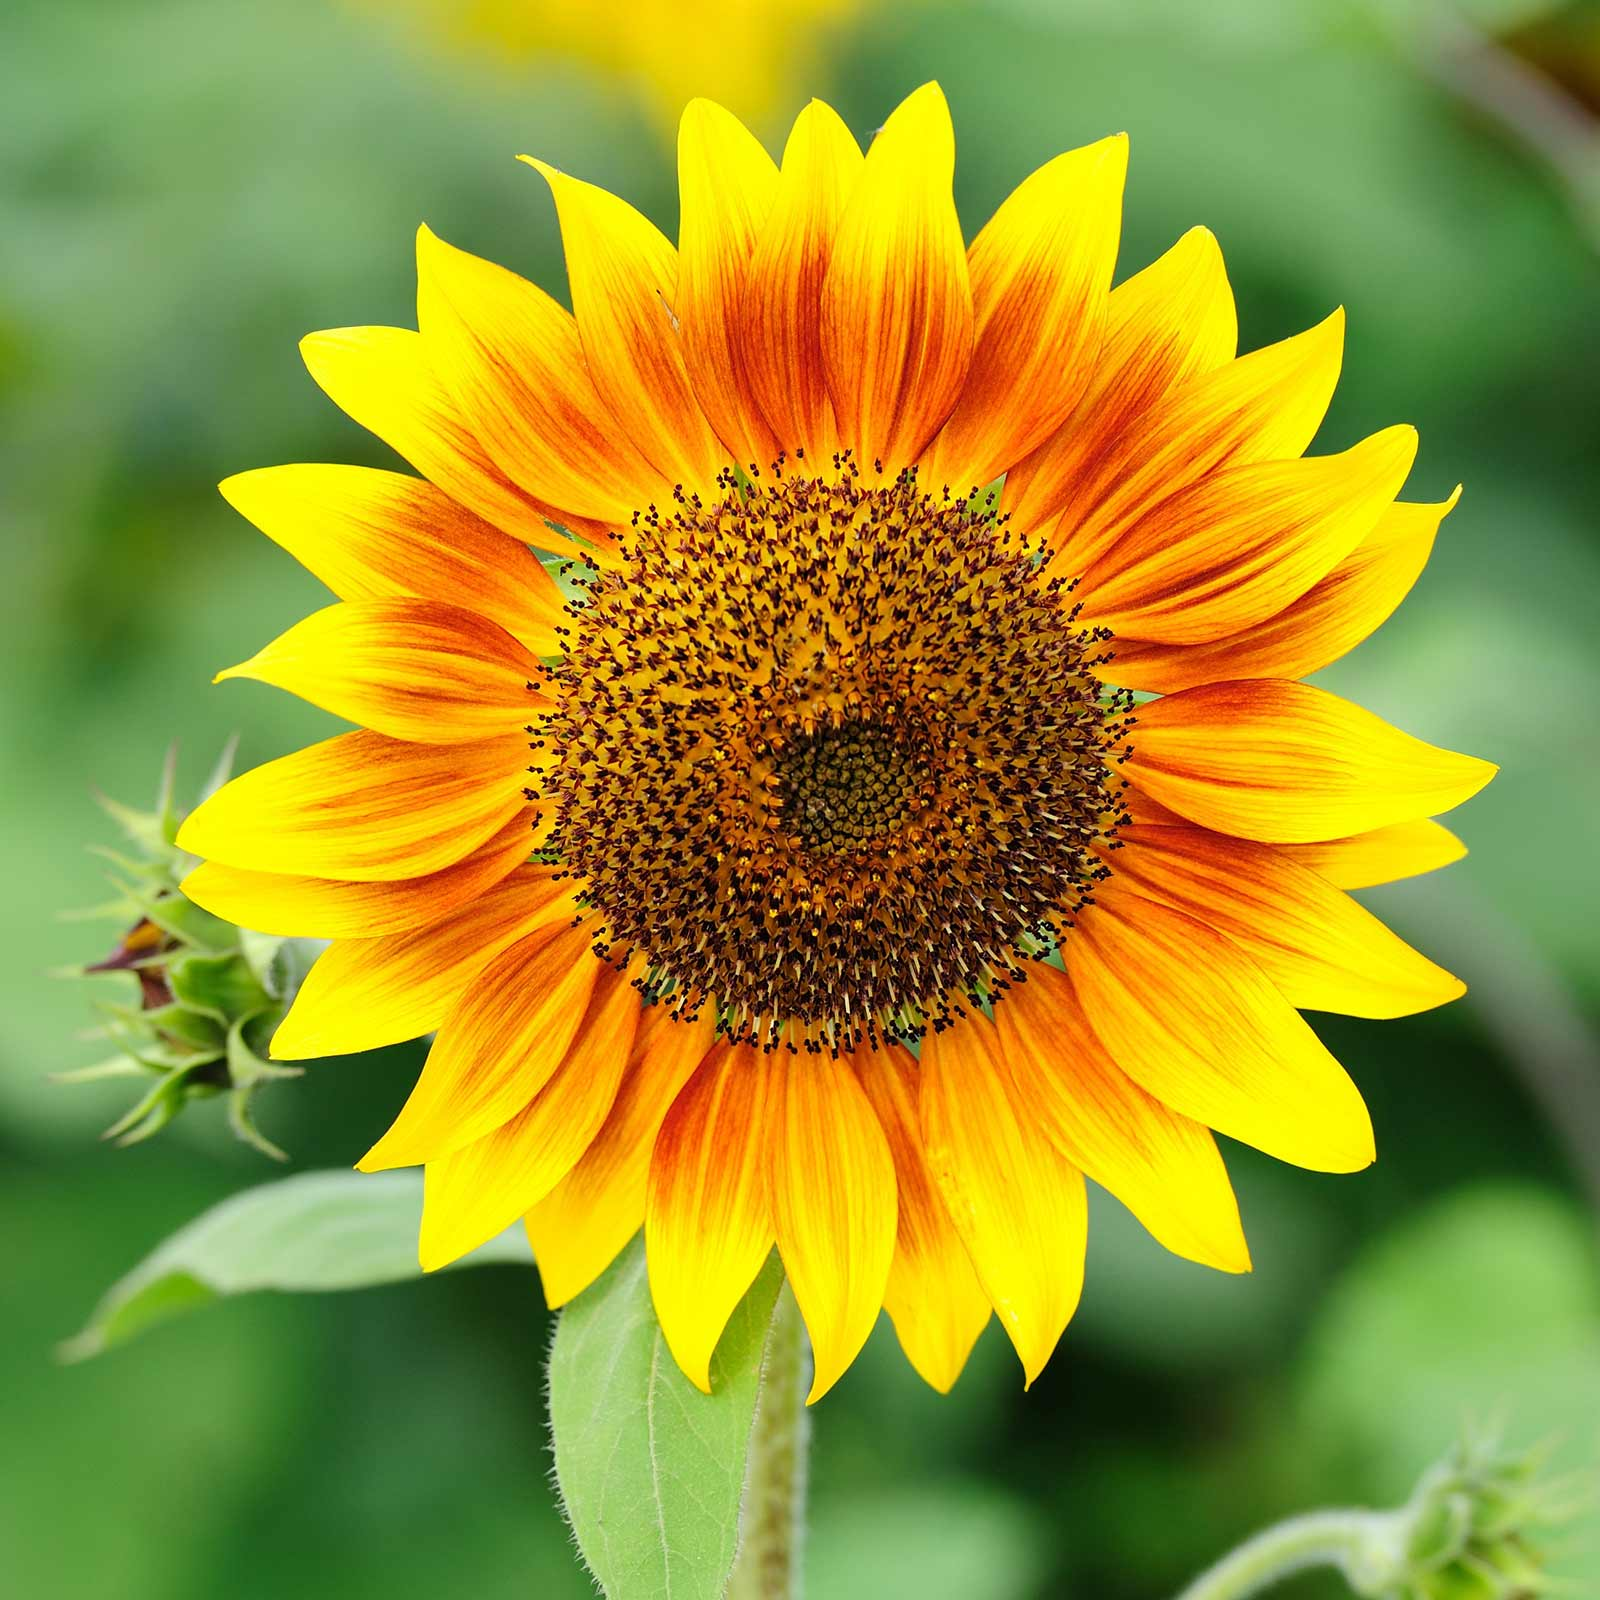 Sunflower Flower Garden Seeds - Pro Cut Series F1 - Mix - 500 Seeds - Annual Wildflower Gardening Seeds - Sun Flower